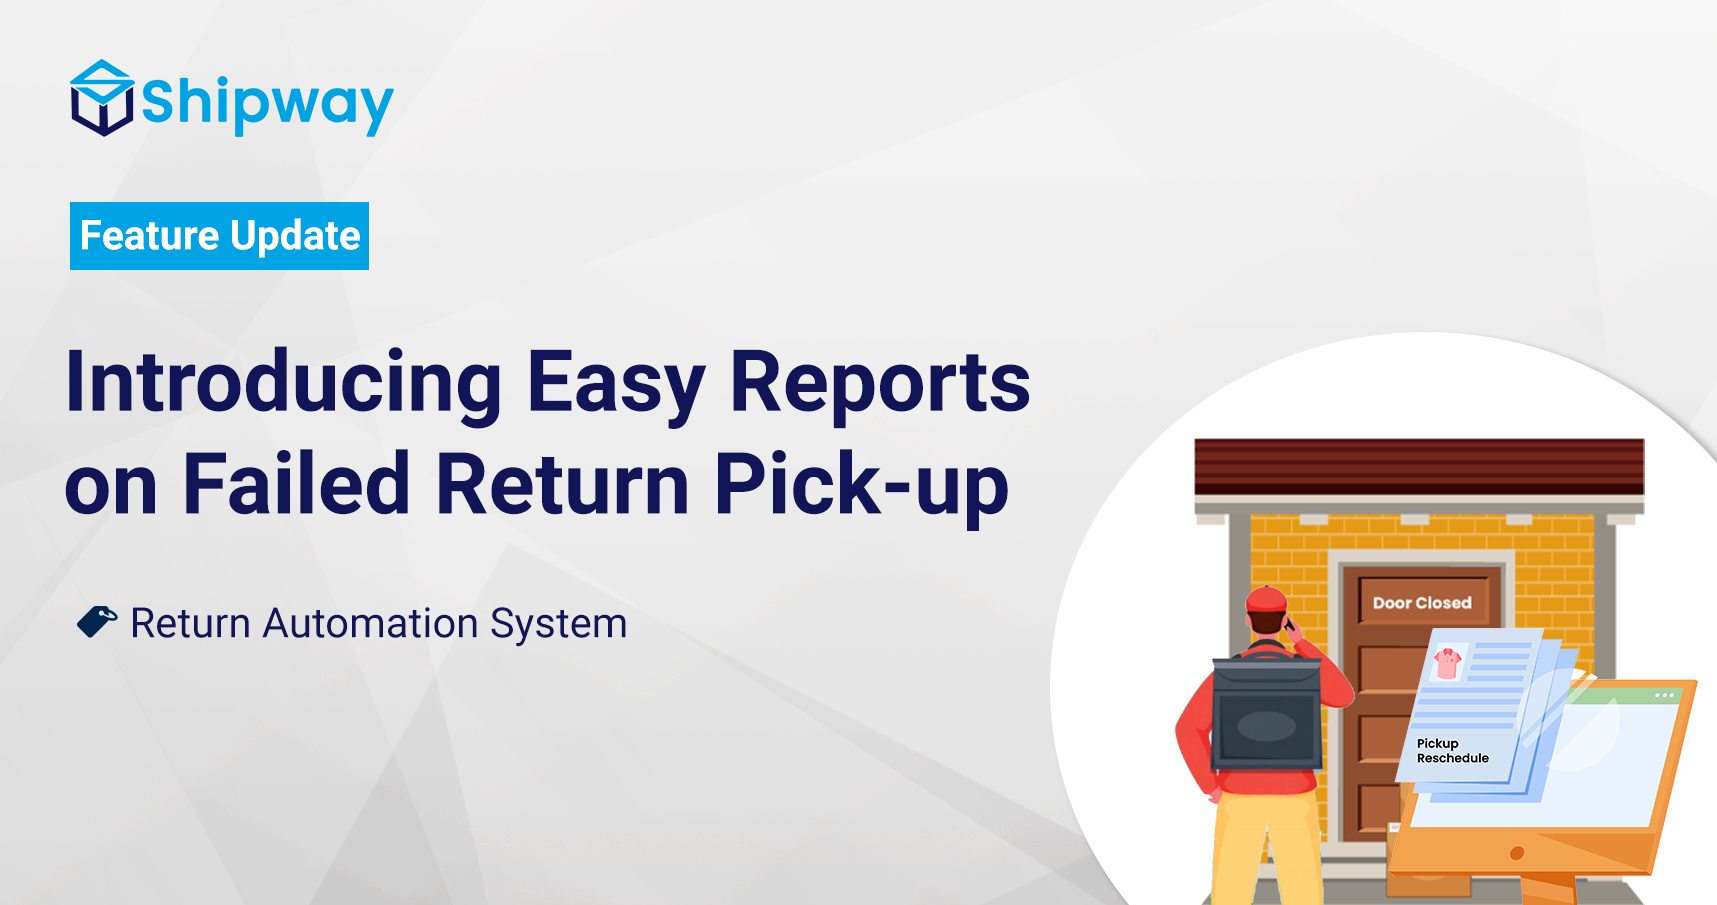 Introducing Easy Reports on Failed Return Pick-ups